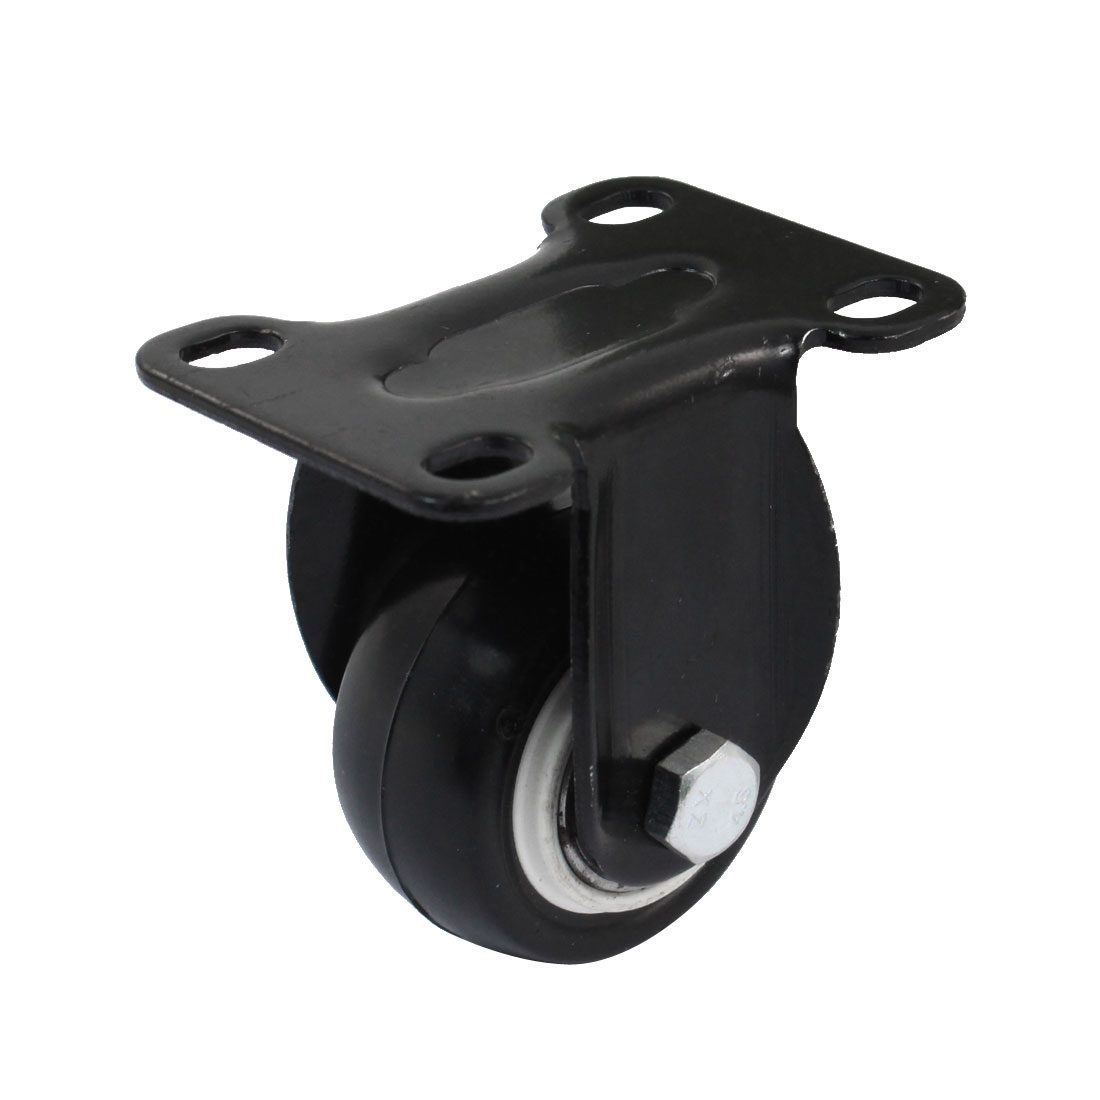 "Market Shopping Trolley 1.5"" Round Wheel Fixed Top Plate Caster Black"